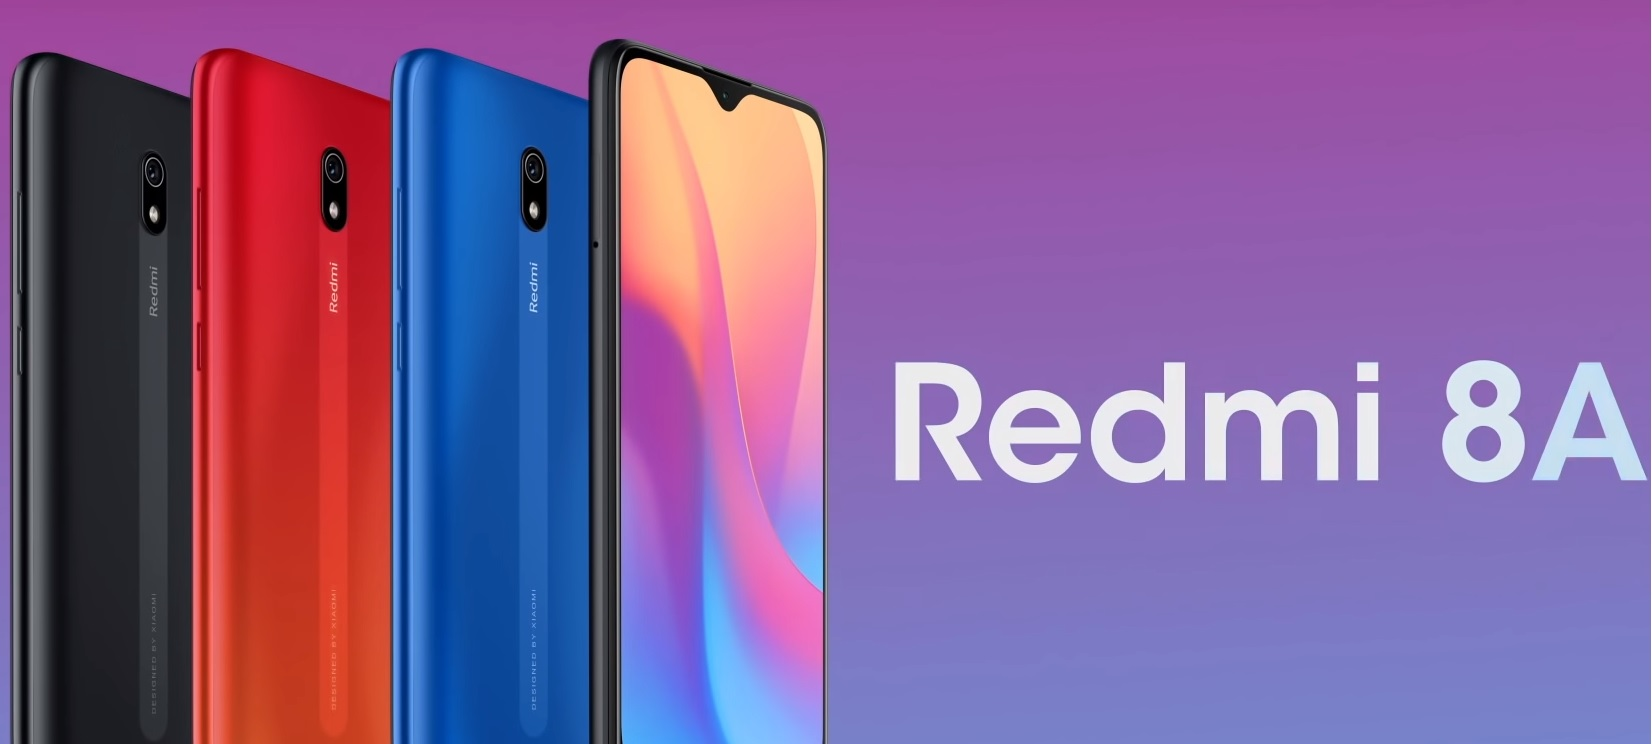 redmi-8a-vs-redmi-7a-specs-comparison-whats-the-difference